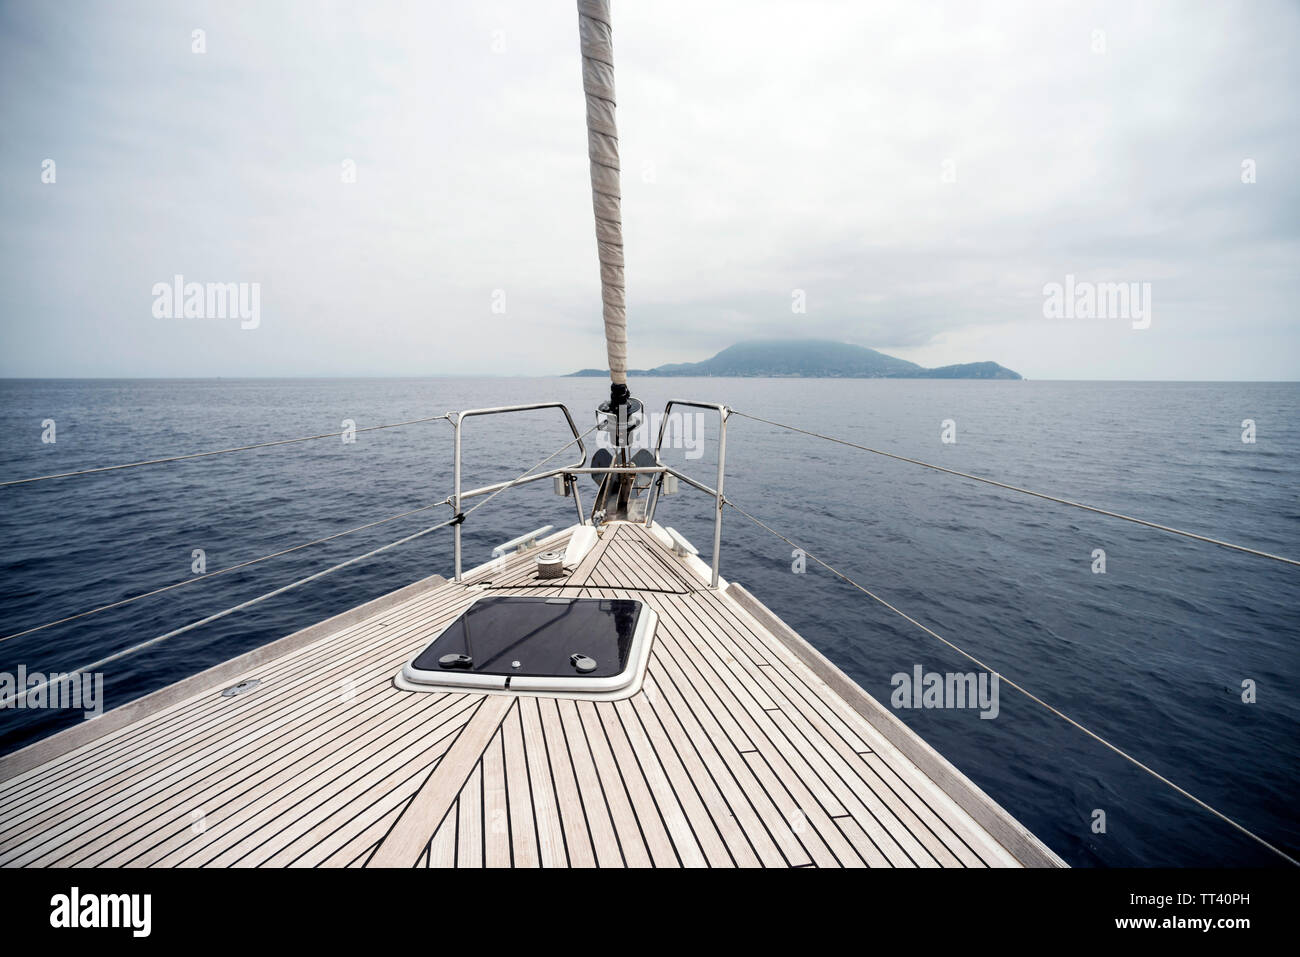 Bow of sailing yacht with land in sight - Stock Image